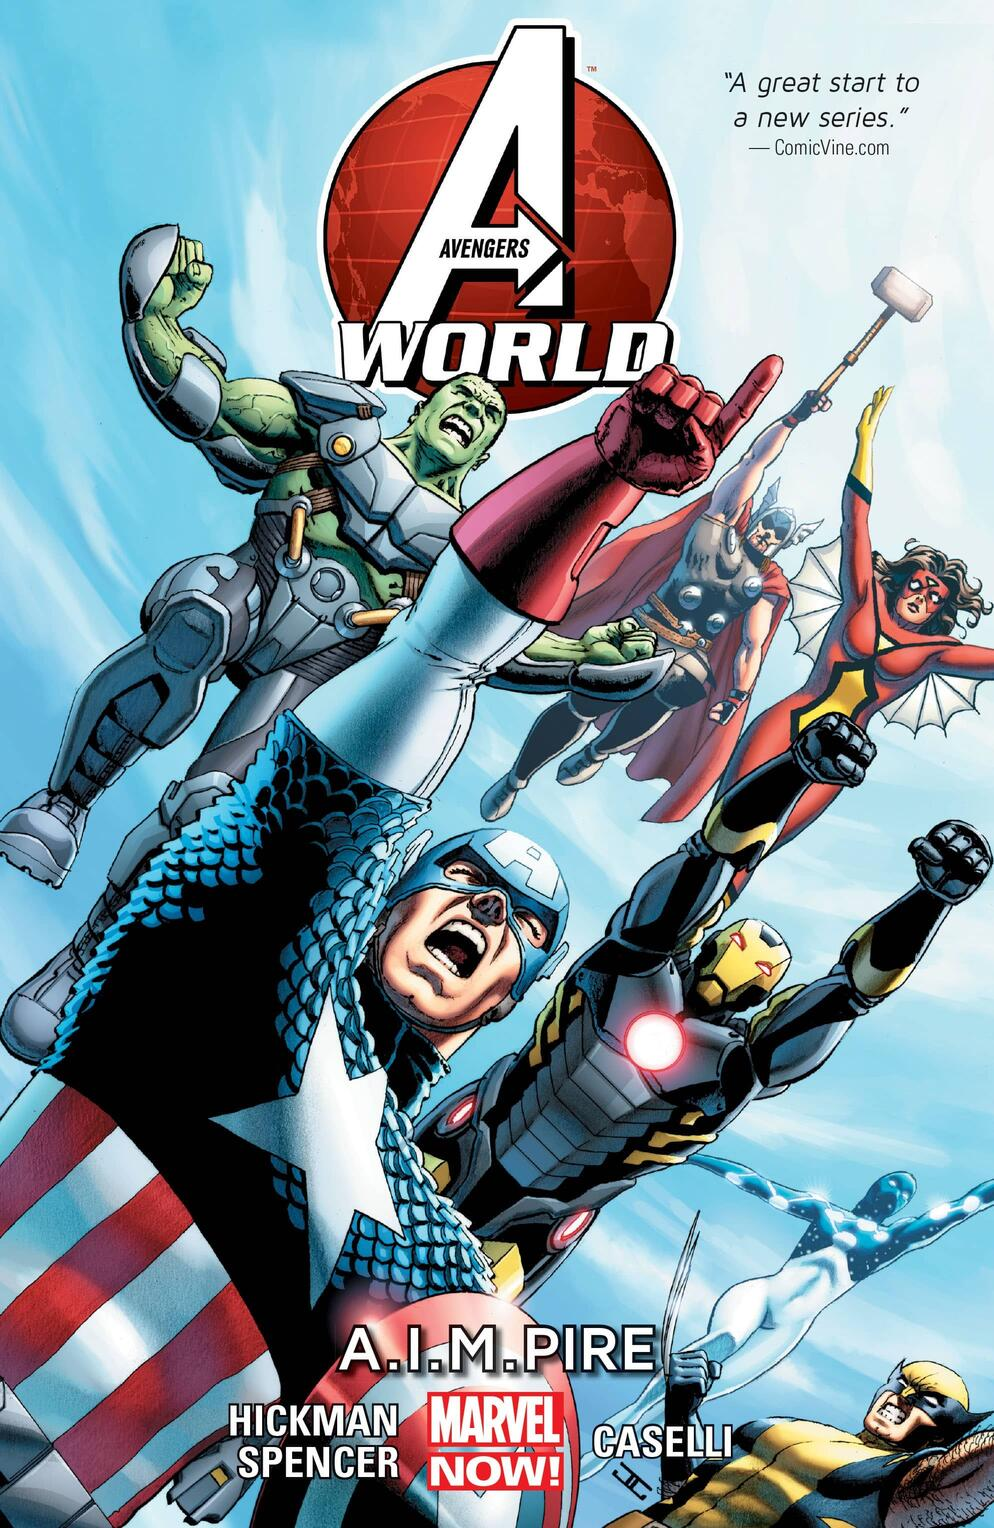 Cover to AVENGERS WORLD VOL. 1: A.I.M.PIRE.